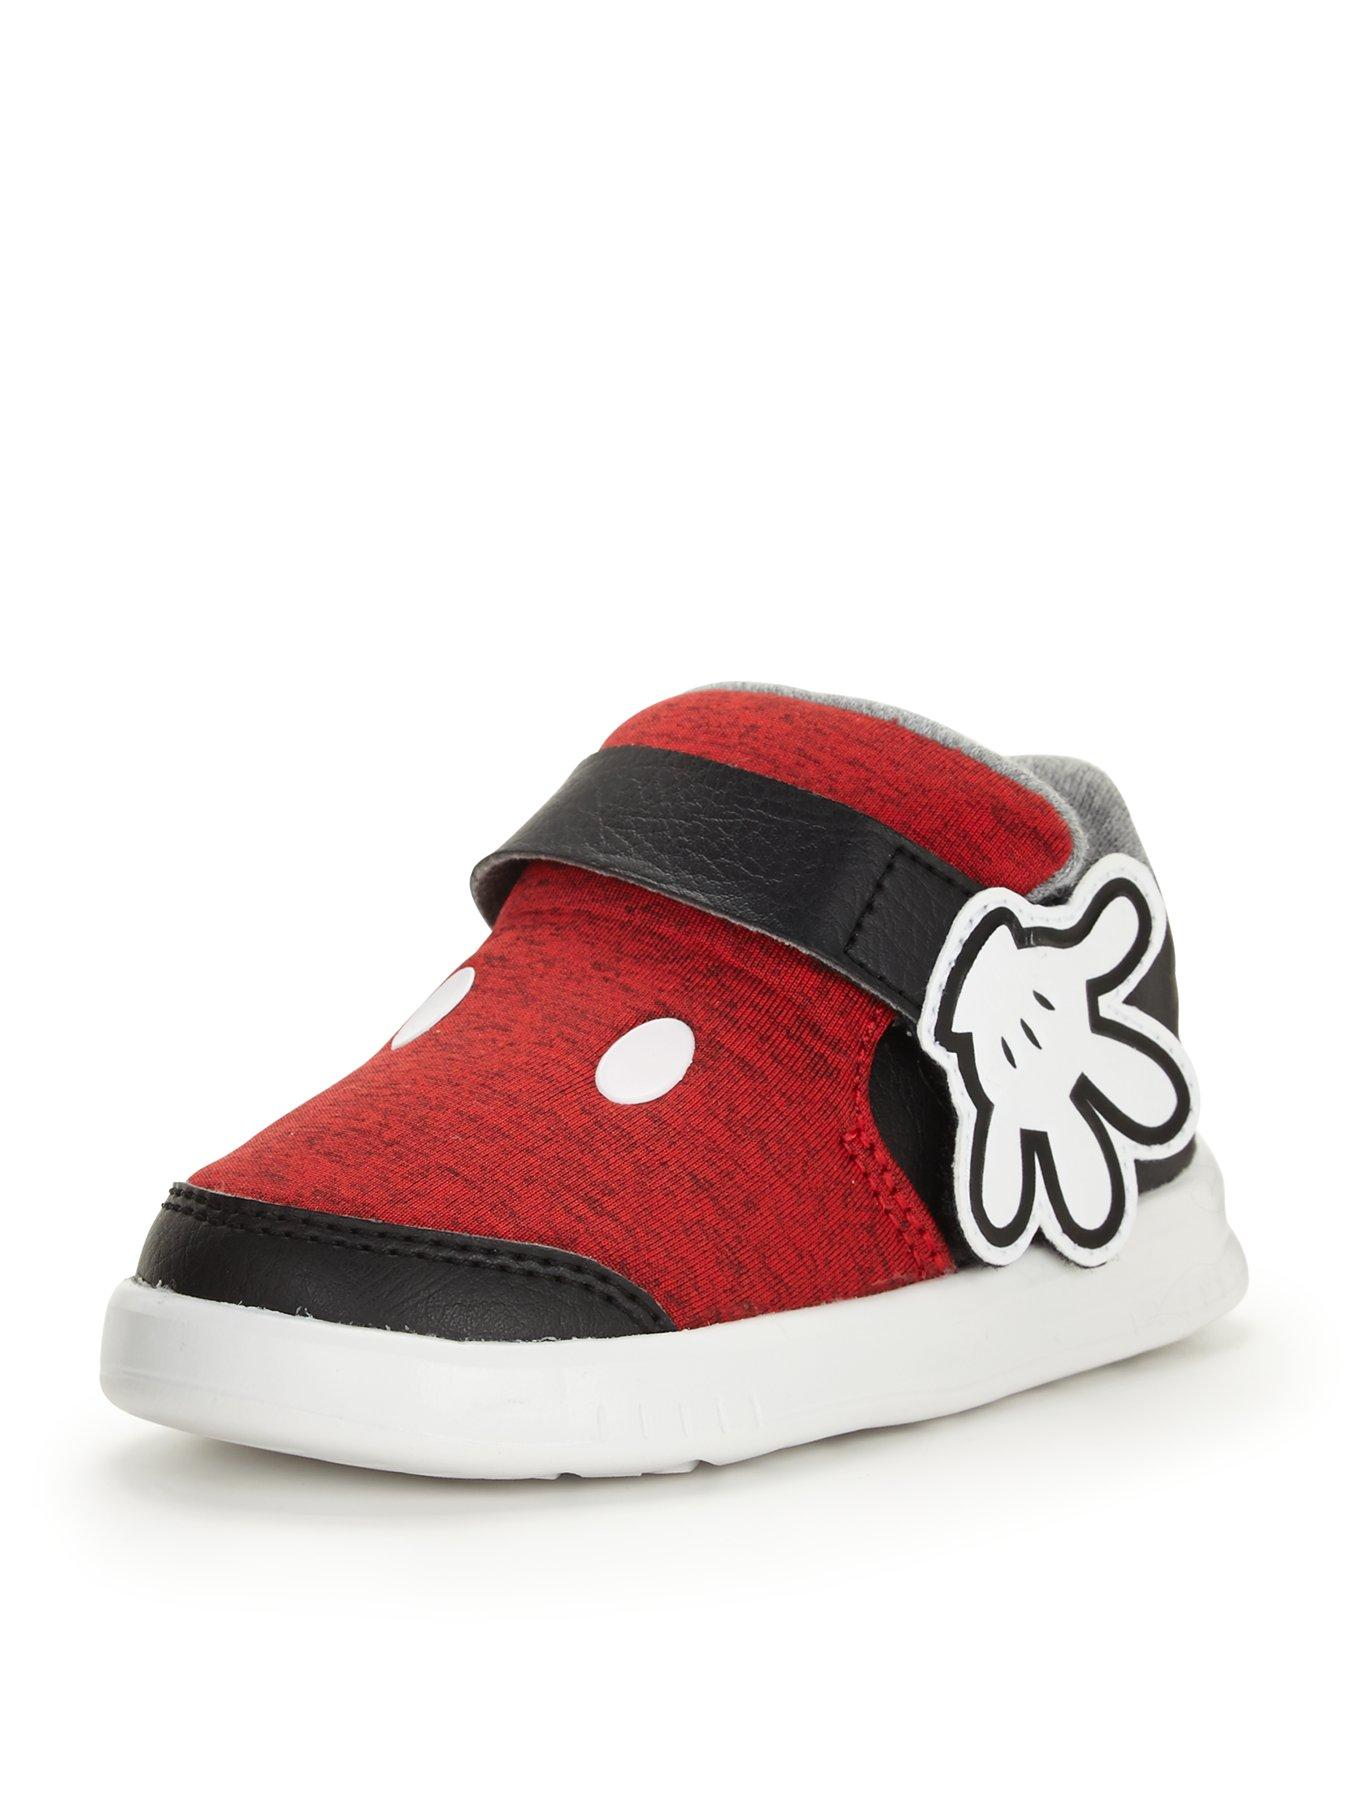 baskets adidas mickey